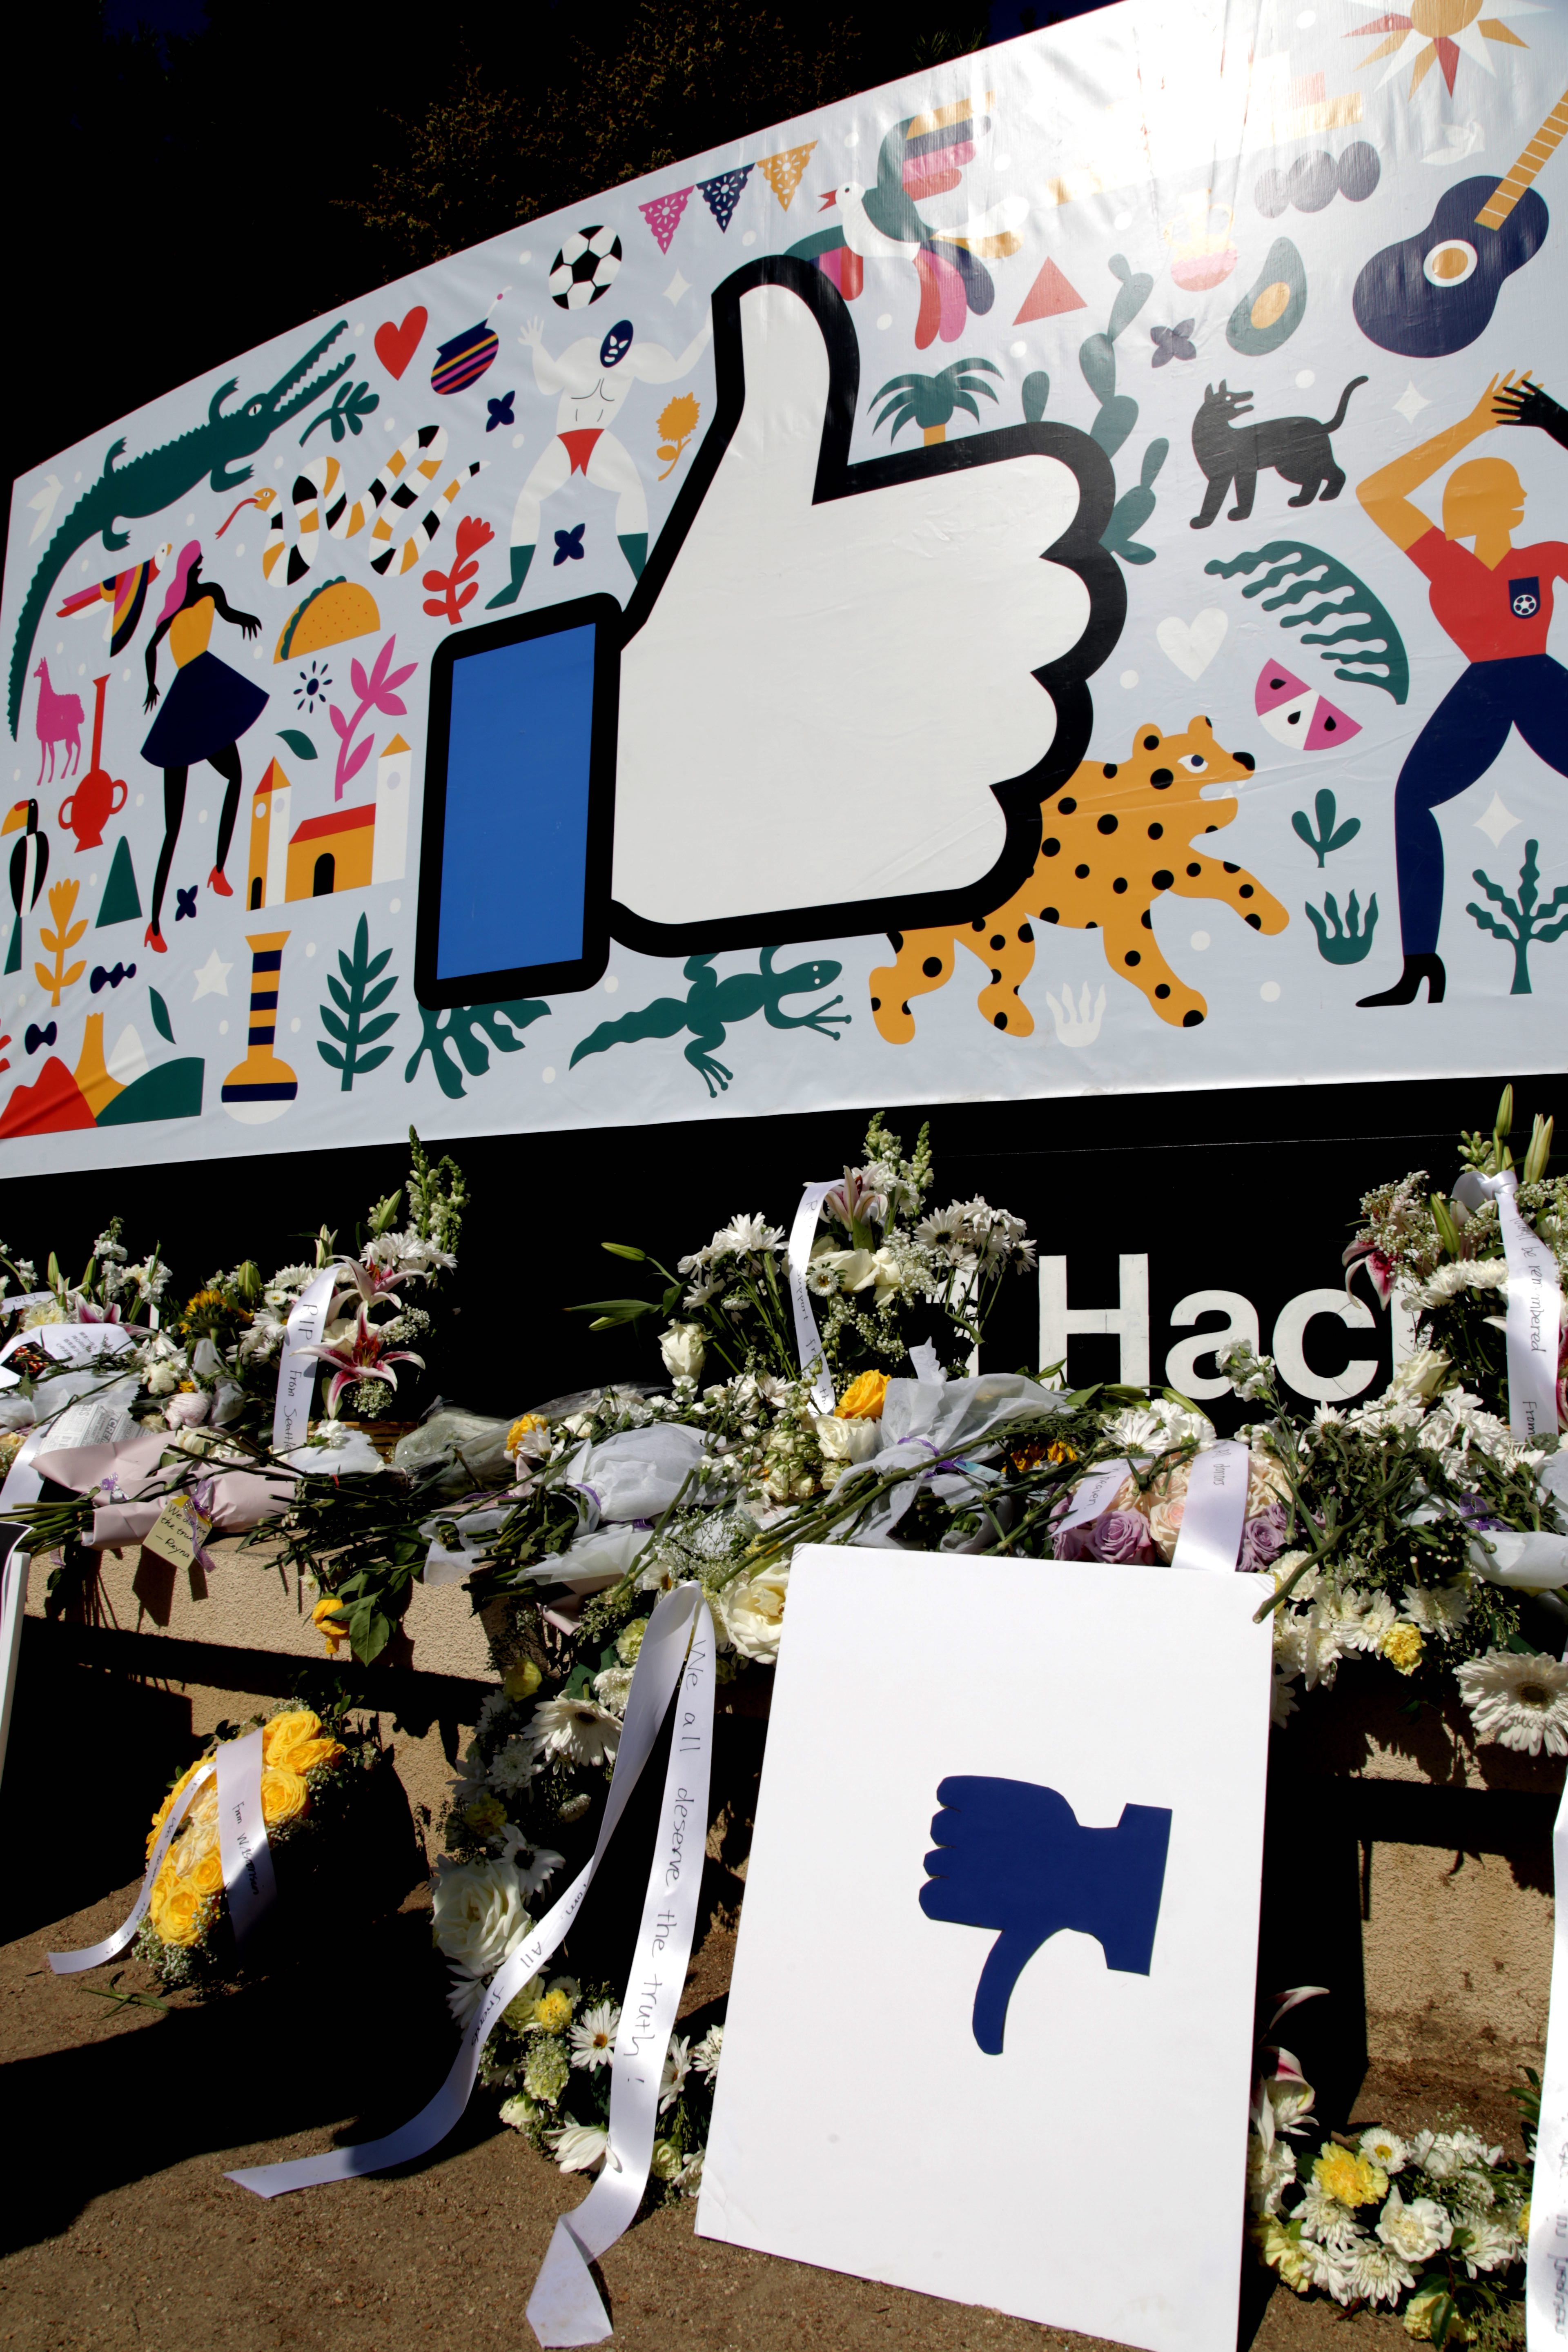 """After the protest, a thumbs-down sign, along with memorial flowers, was left in front of Facebook's iconic thumbs-up """"like"""" sign at the entrance of the company's Menlo Park campus on Thursday September 26, 2019. Protestors say they are not happy with the company's silence towards Qin Chen's suicide case."""